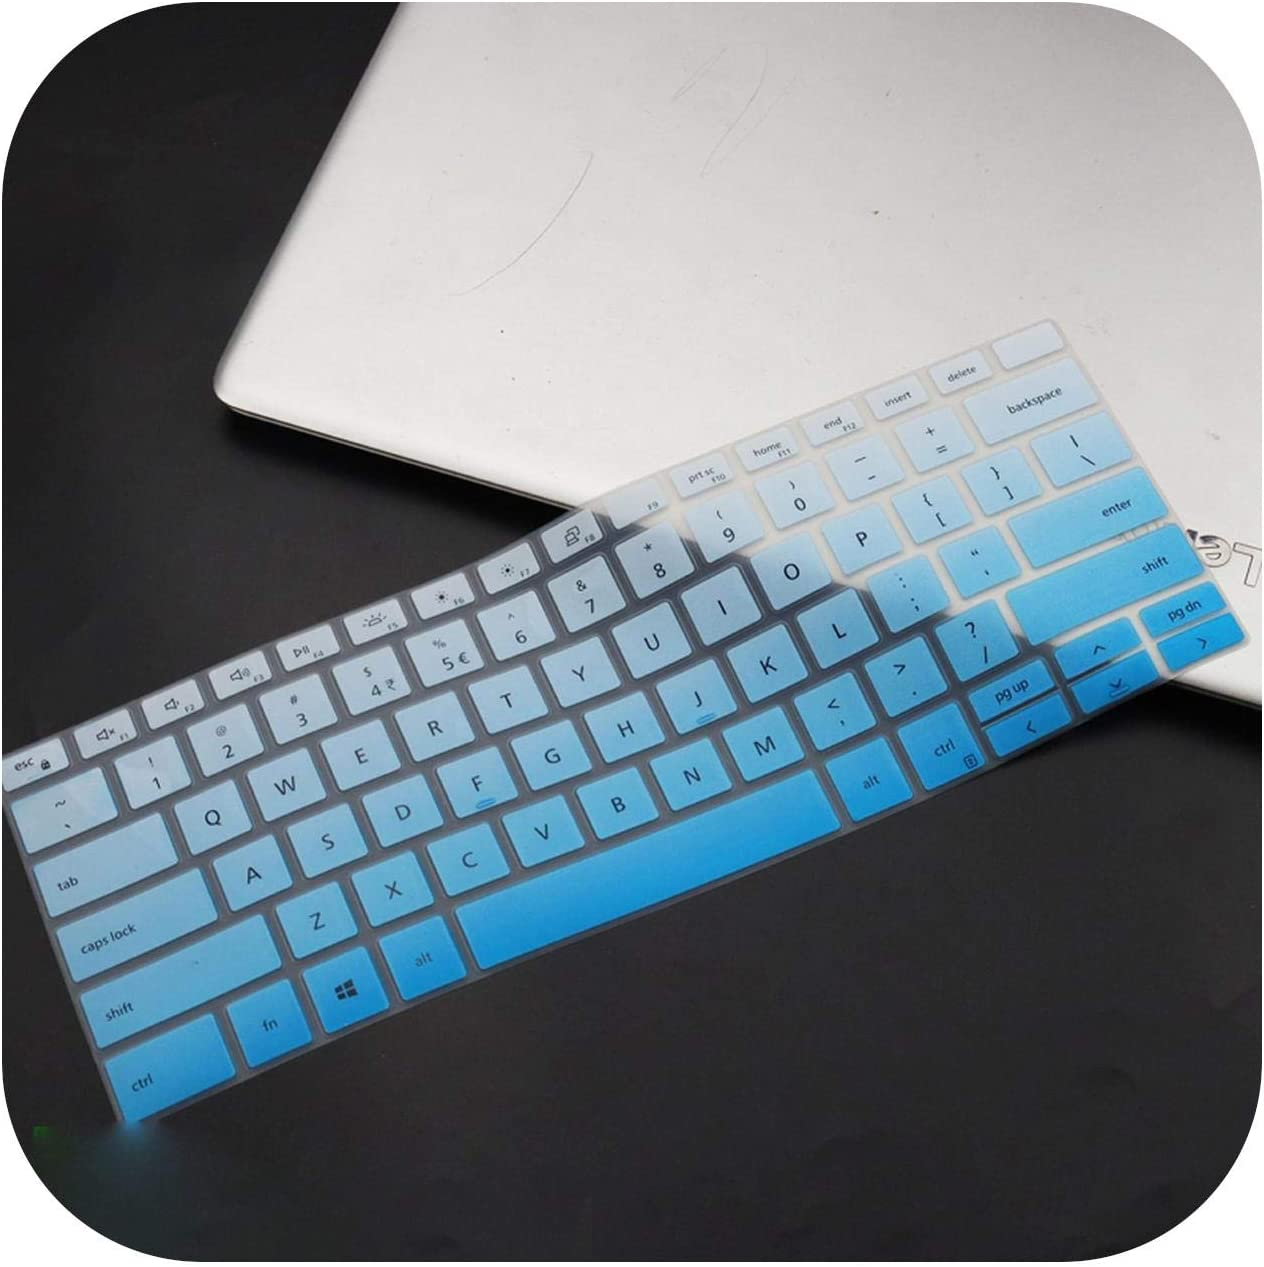 Silicone Notebook Laptop Keyboard Cover Protector Skin for Dell Xps 13 9300 7390 2020 / Xps 15 9500 2020 / Xps 17 9700 2020-Fadeblue